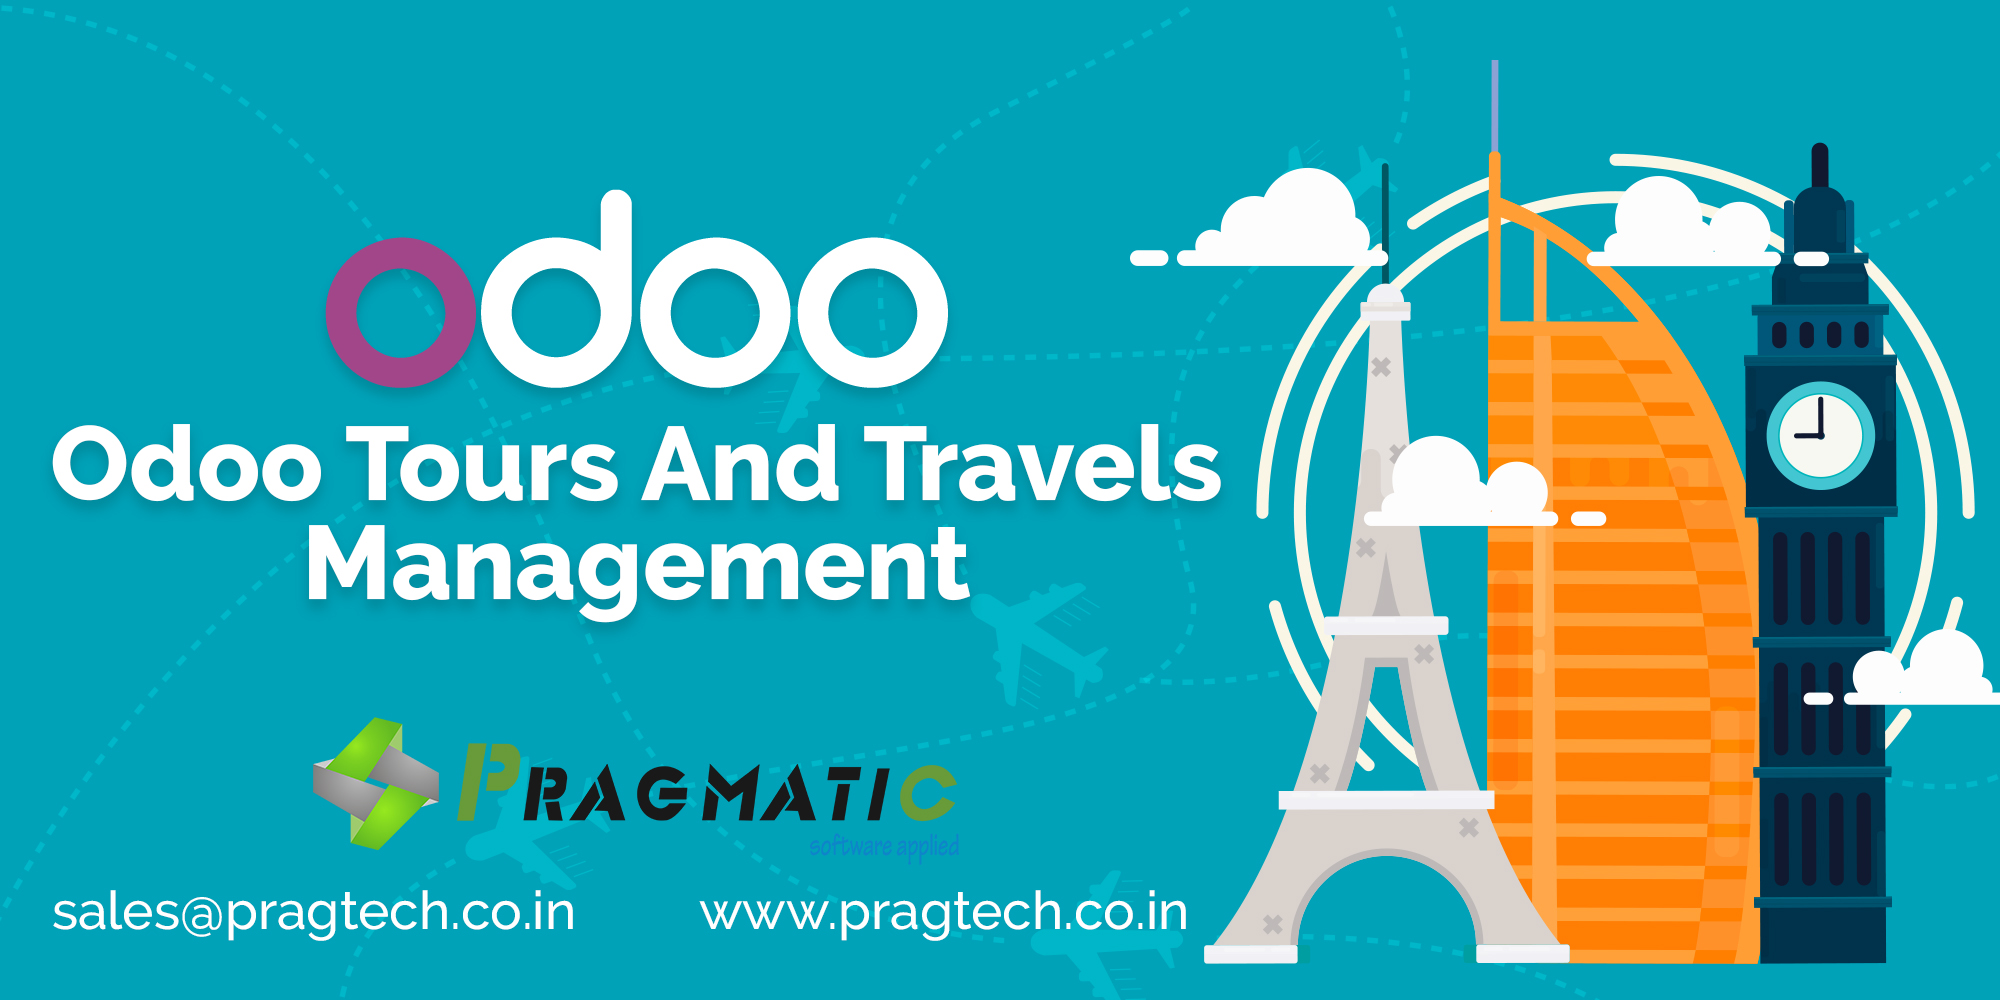 Odoo Tour and Travels Management